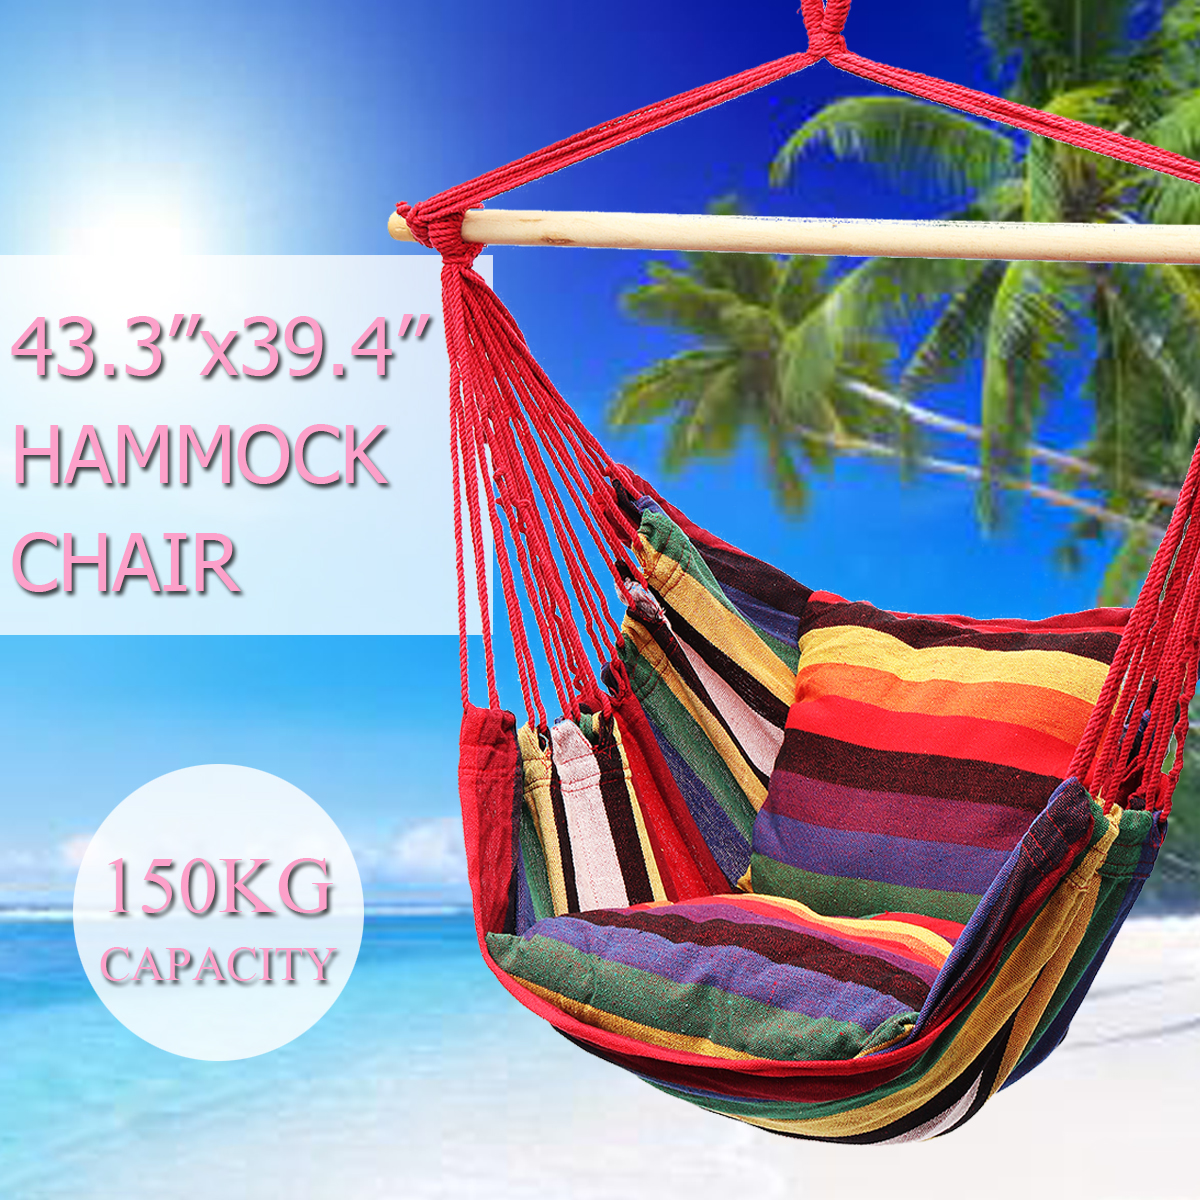 Outdoor Indoor Hammock Chair with 2 Pillows Cradle Chair Comfortable Household Hammock Chair Dormitory Swinging Hanging Chair outdoor rattan hammock stand chair with cushions